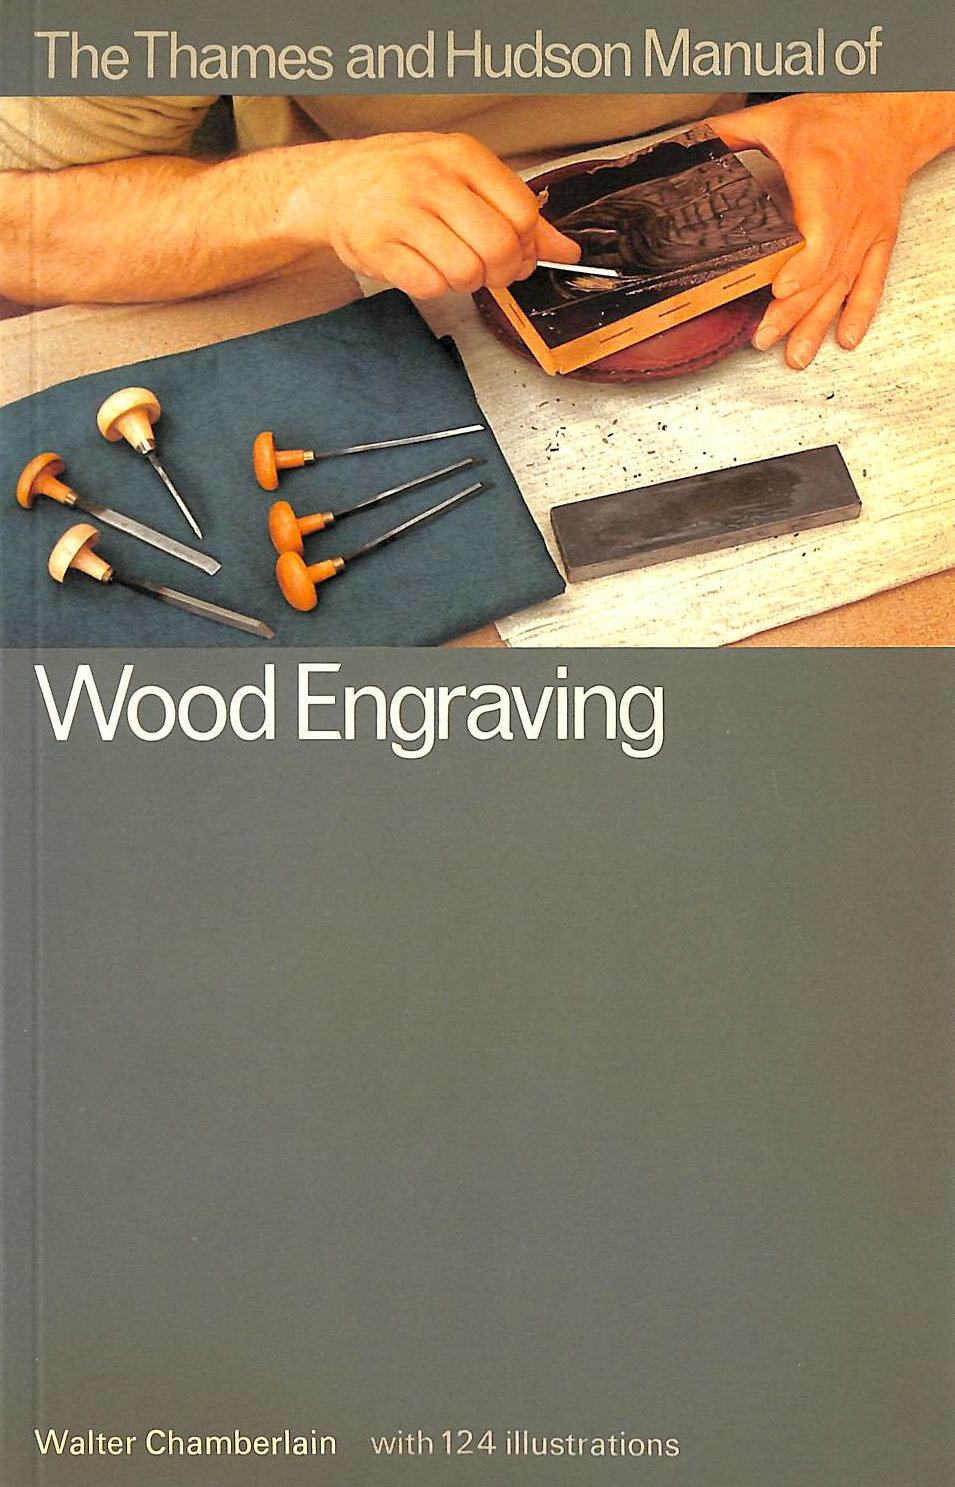 Image for Wood Engraving